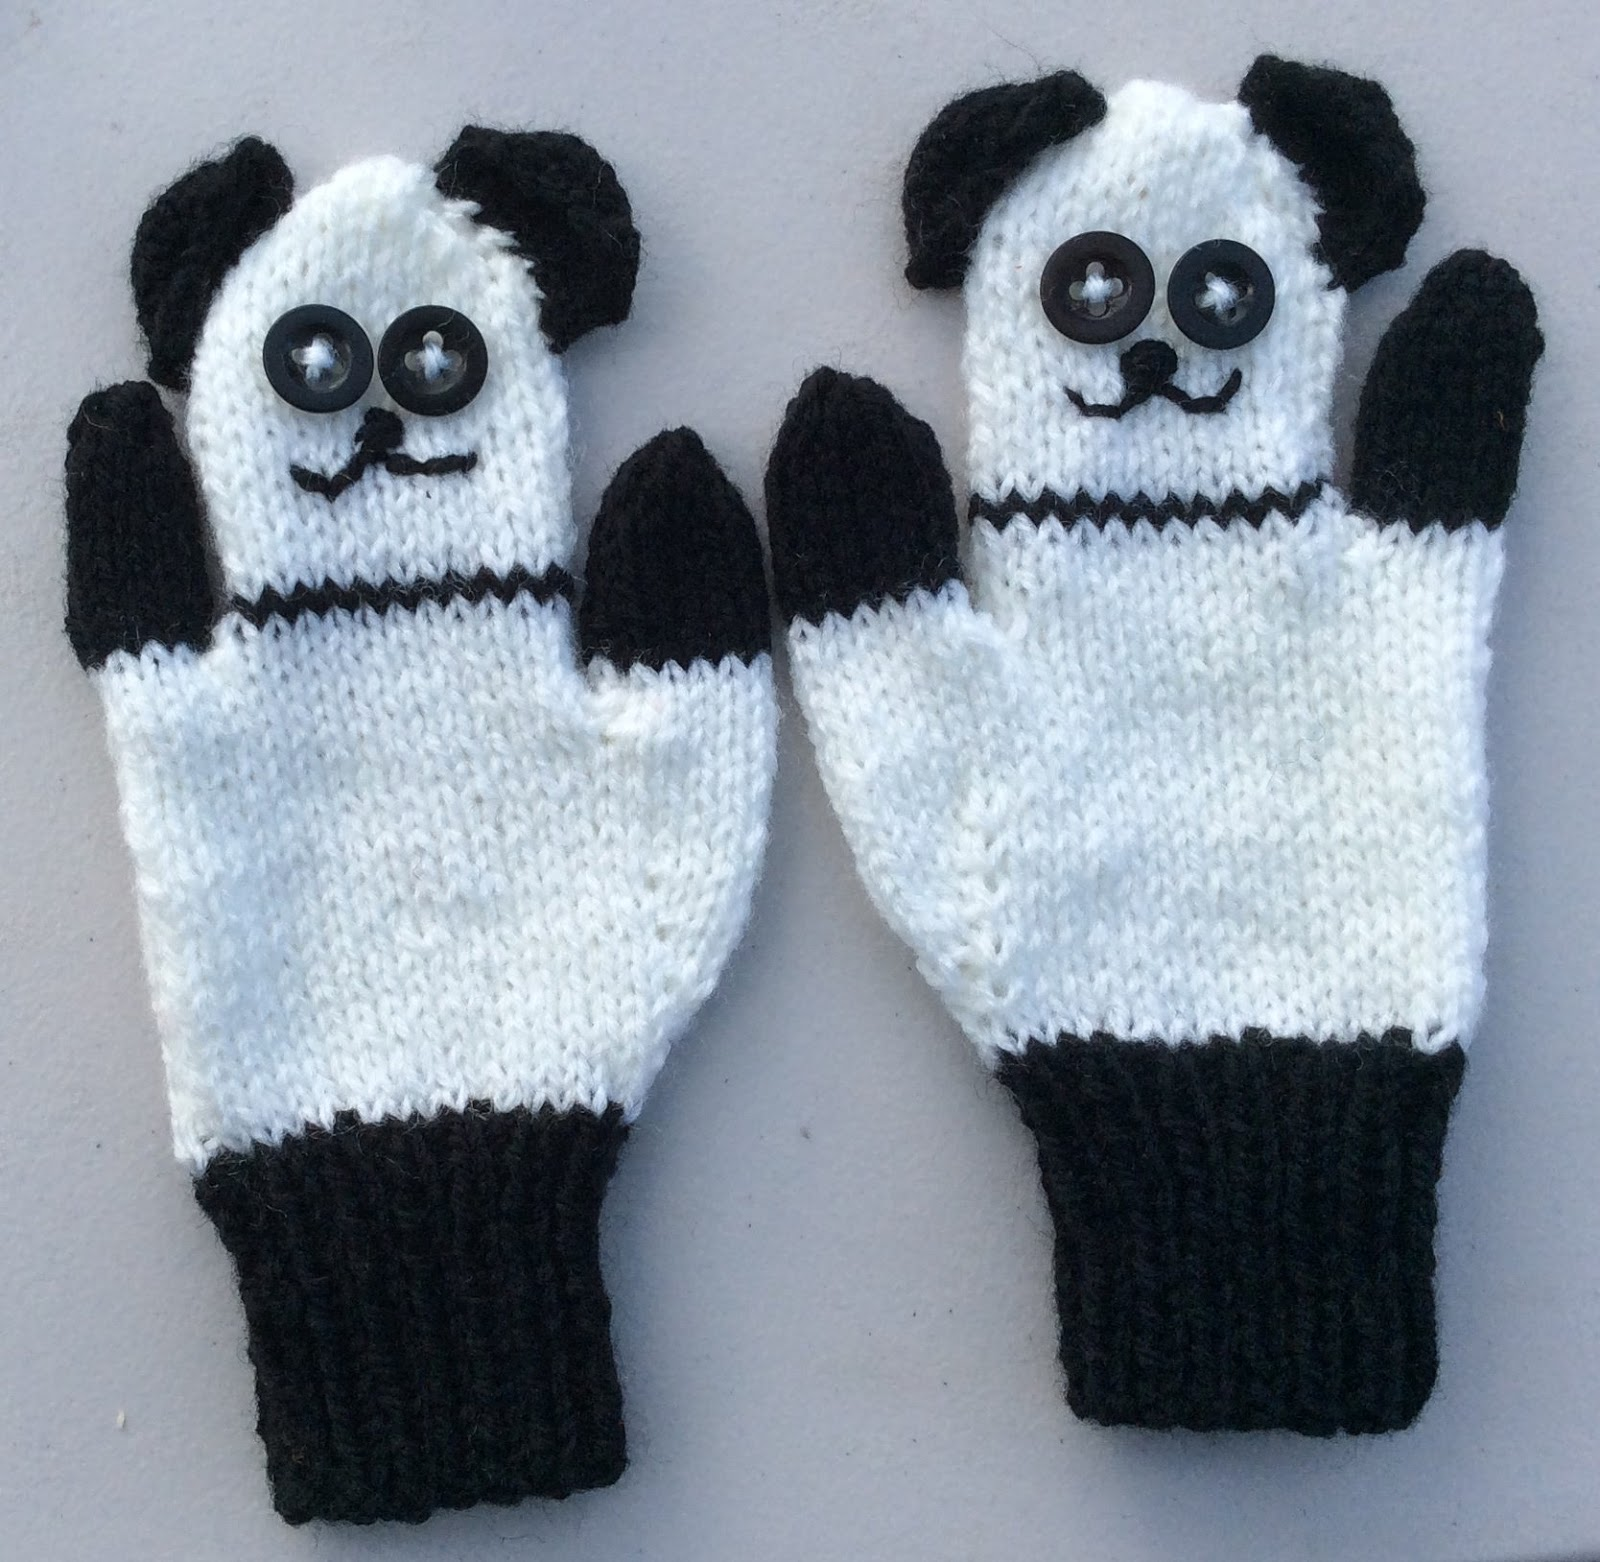 Knitting Pattern For Puppet Mittens : bitstobuy: New fun knitting pattern for Child Animal ...